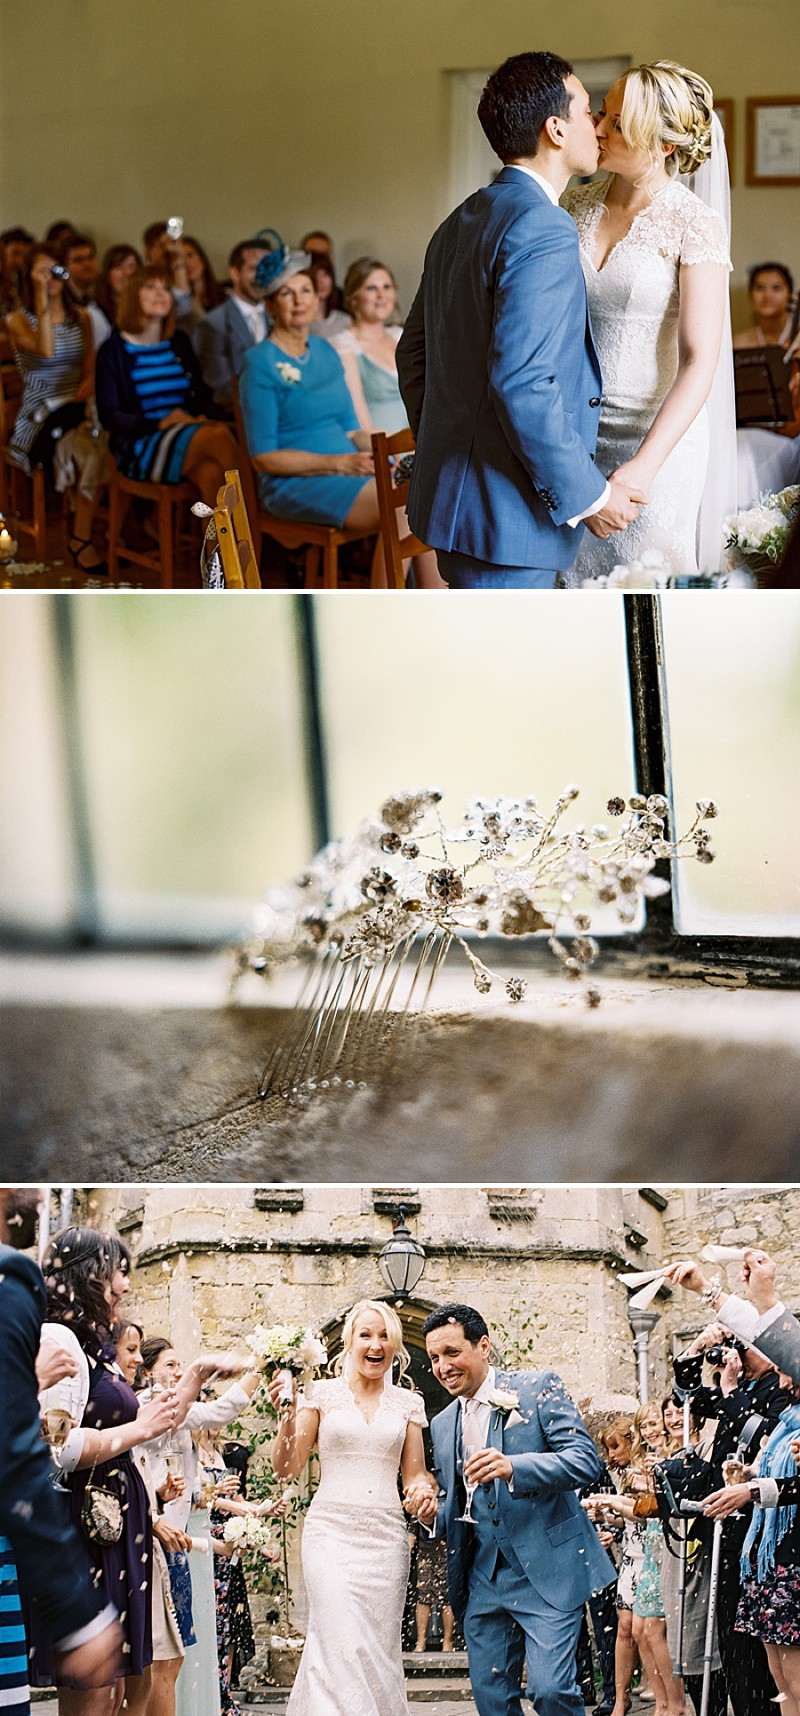 A Spring wedding at Notley Abbey with a bride in Captivating by Suzanne Neville and photography by Ann-Kathrin Koch_0256